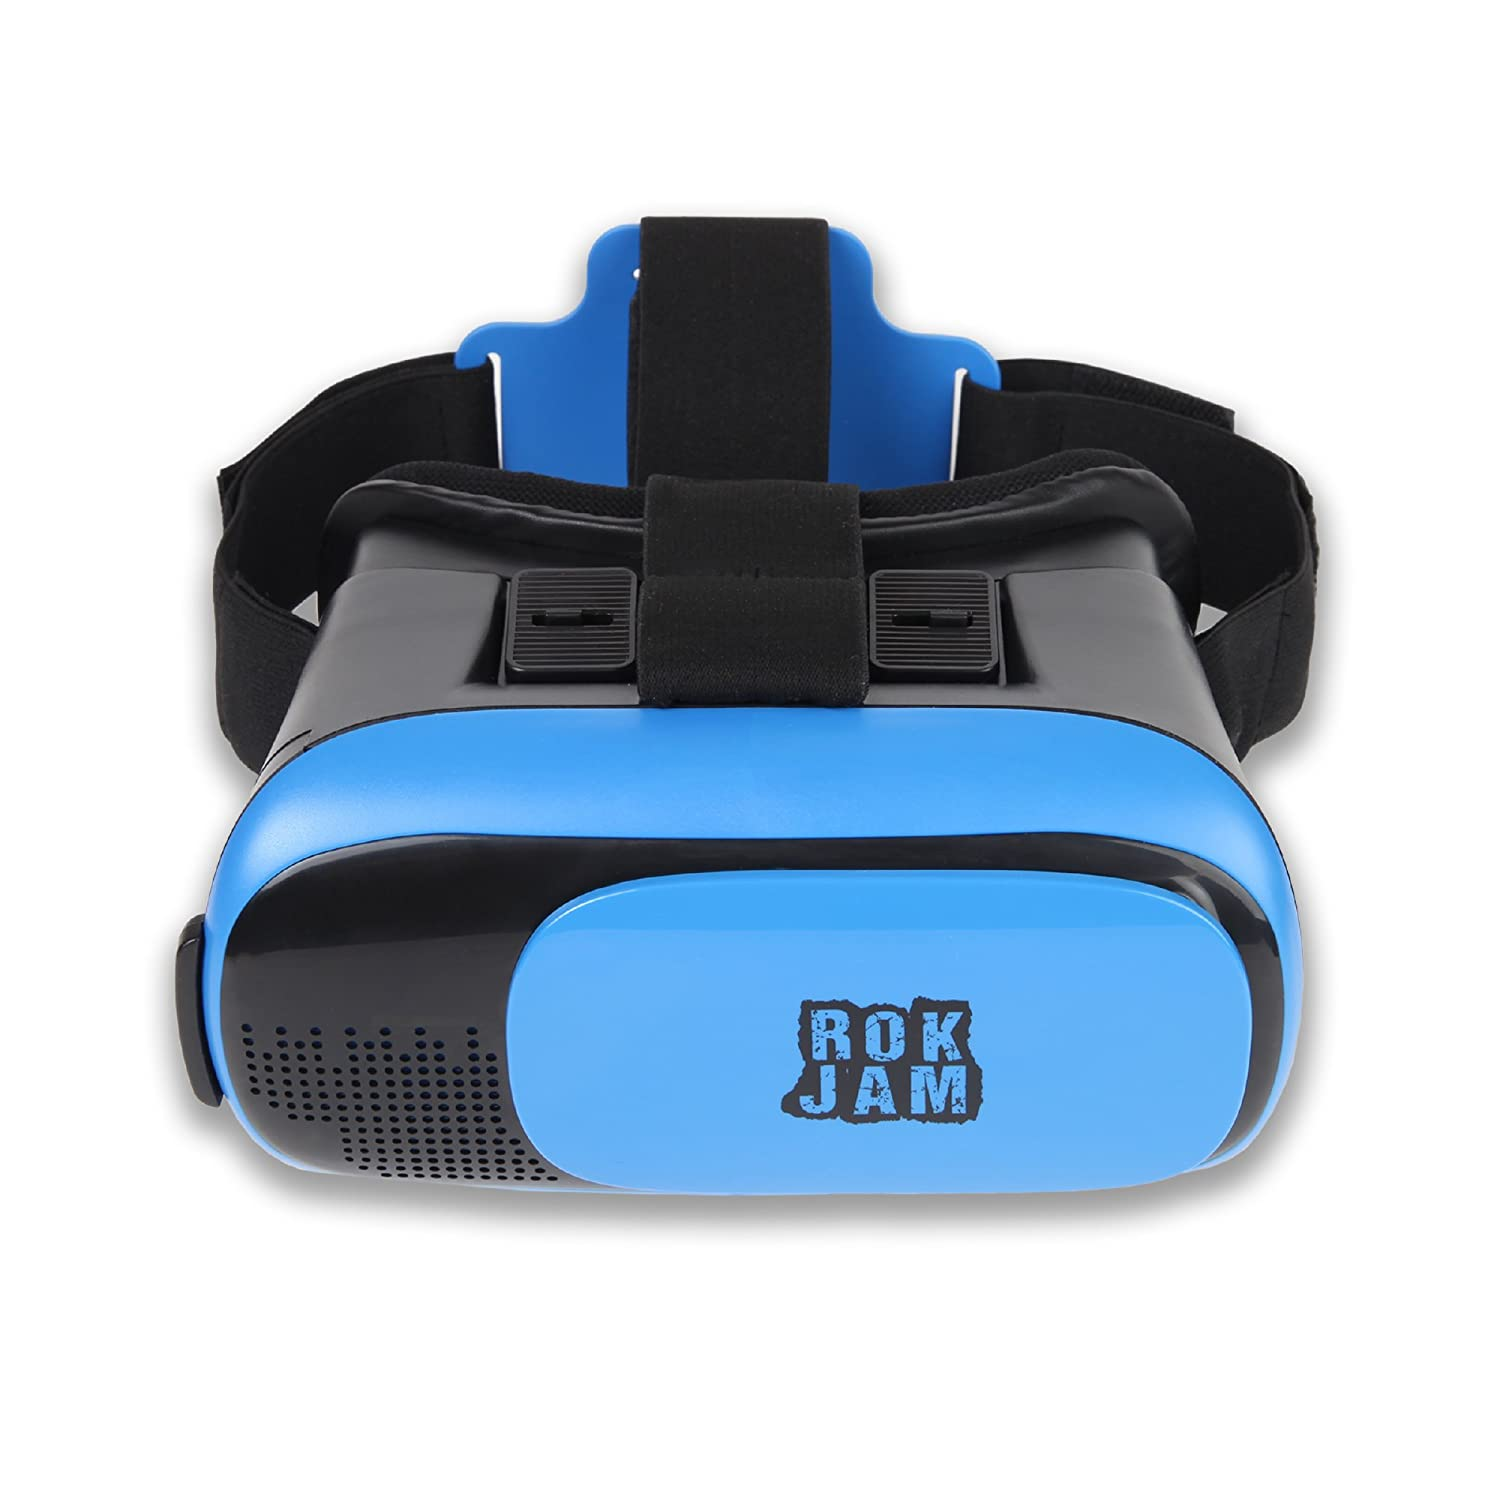 ROKJAM 3D VR Headset Technology For iPhone & Android Smartphones Fortyninersgoldrush LLC